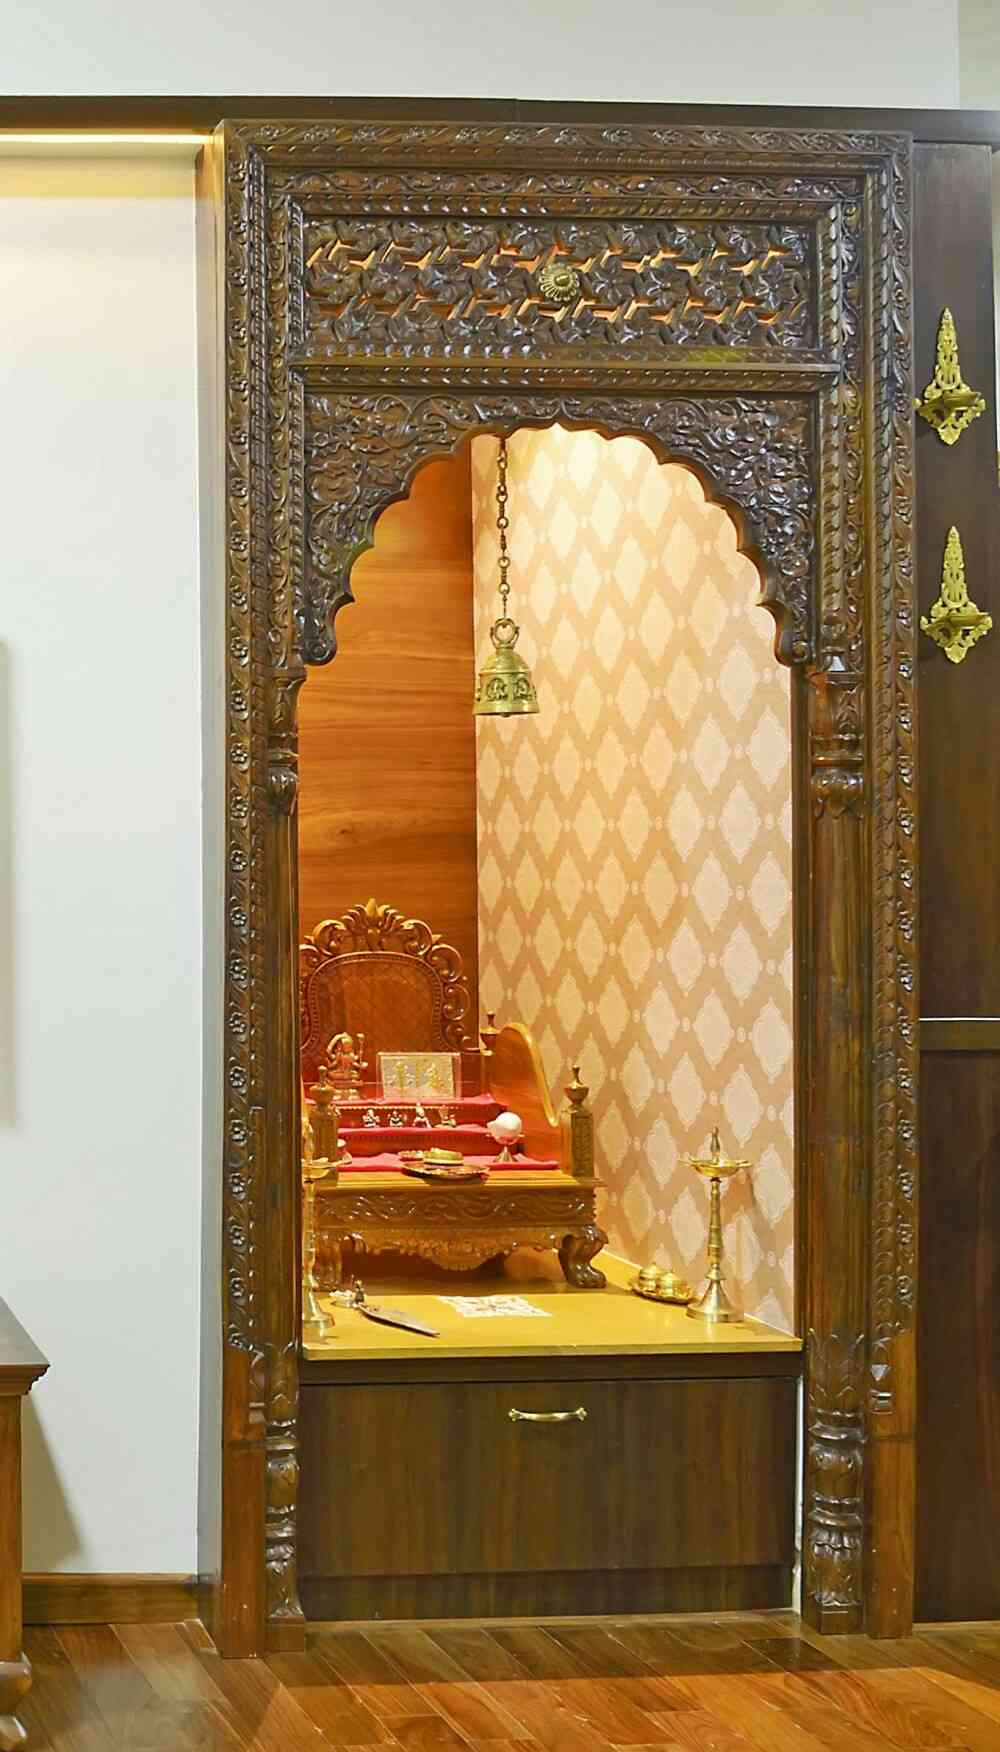 Simple Pooja Mandir Designs | Pooja Mandir Room Design Ideas for Home